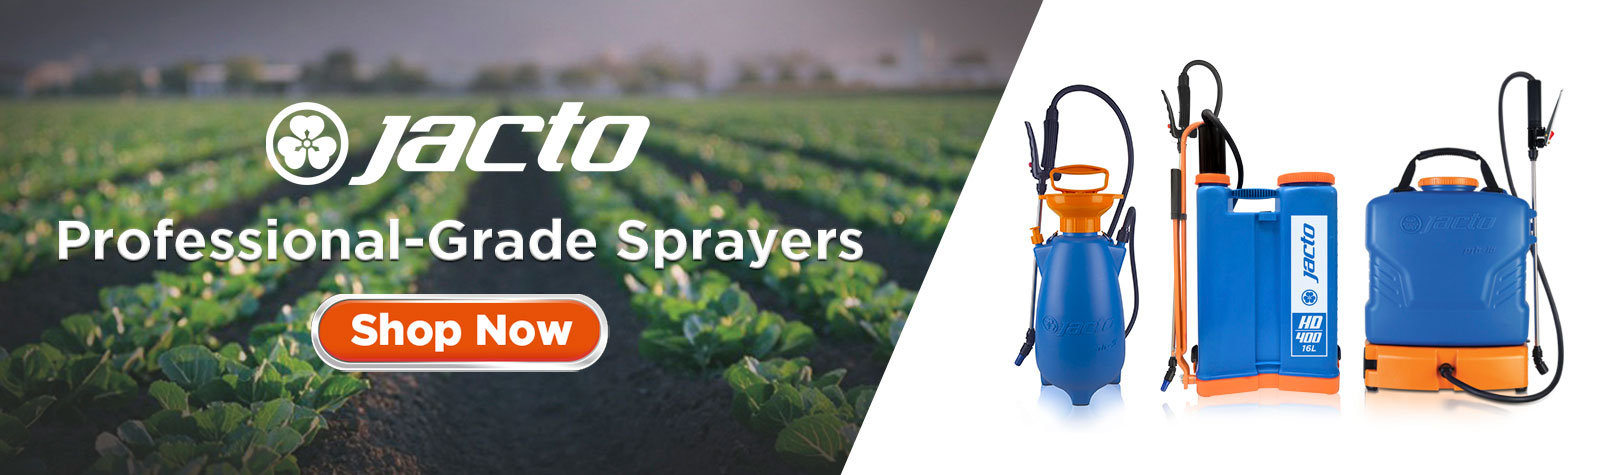 Shop our line of Professional Jacto Sprayers